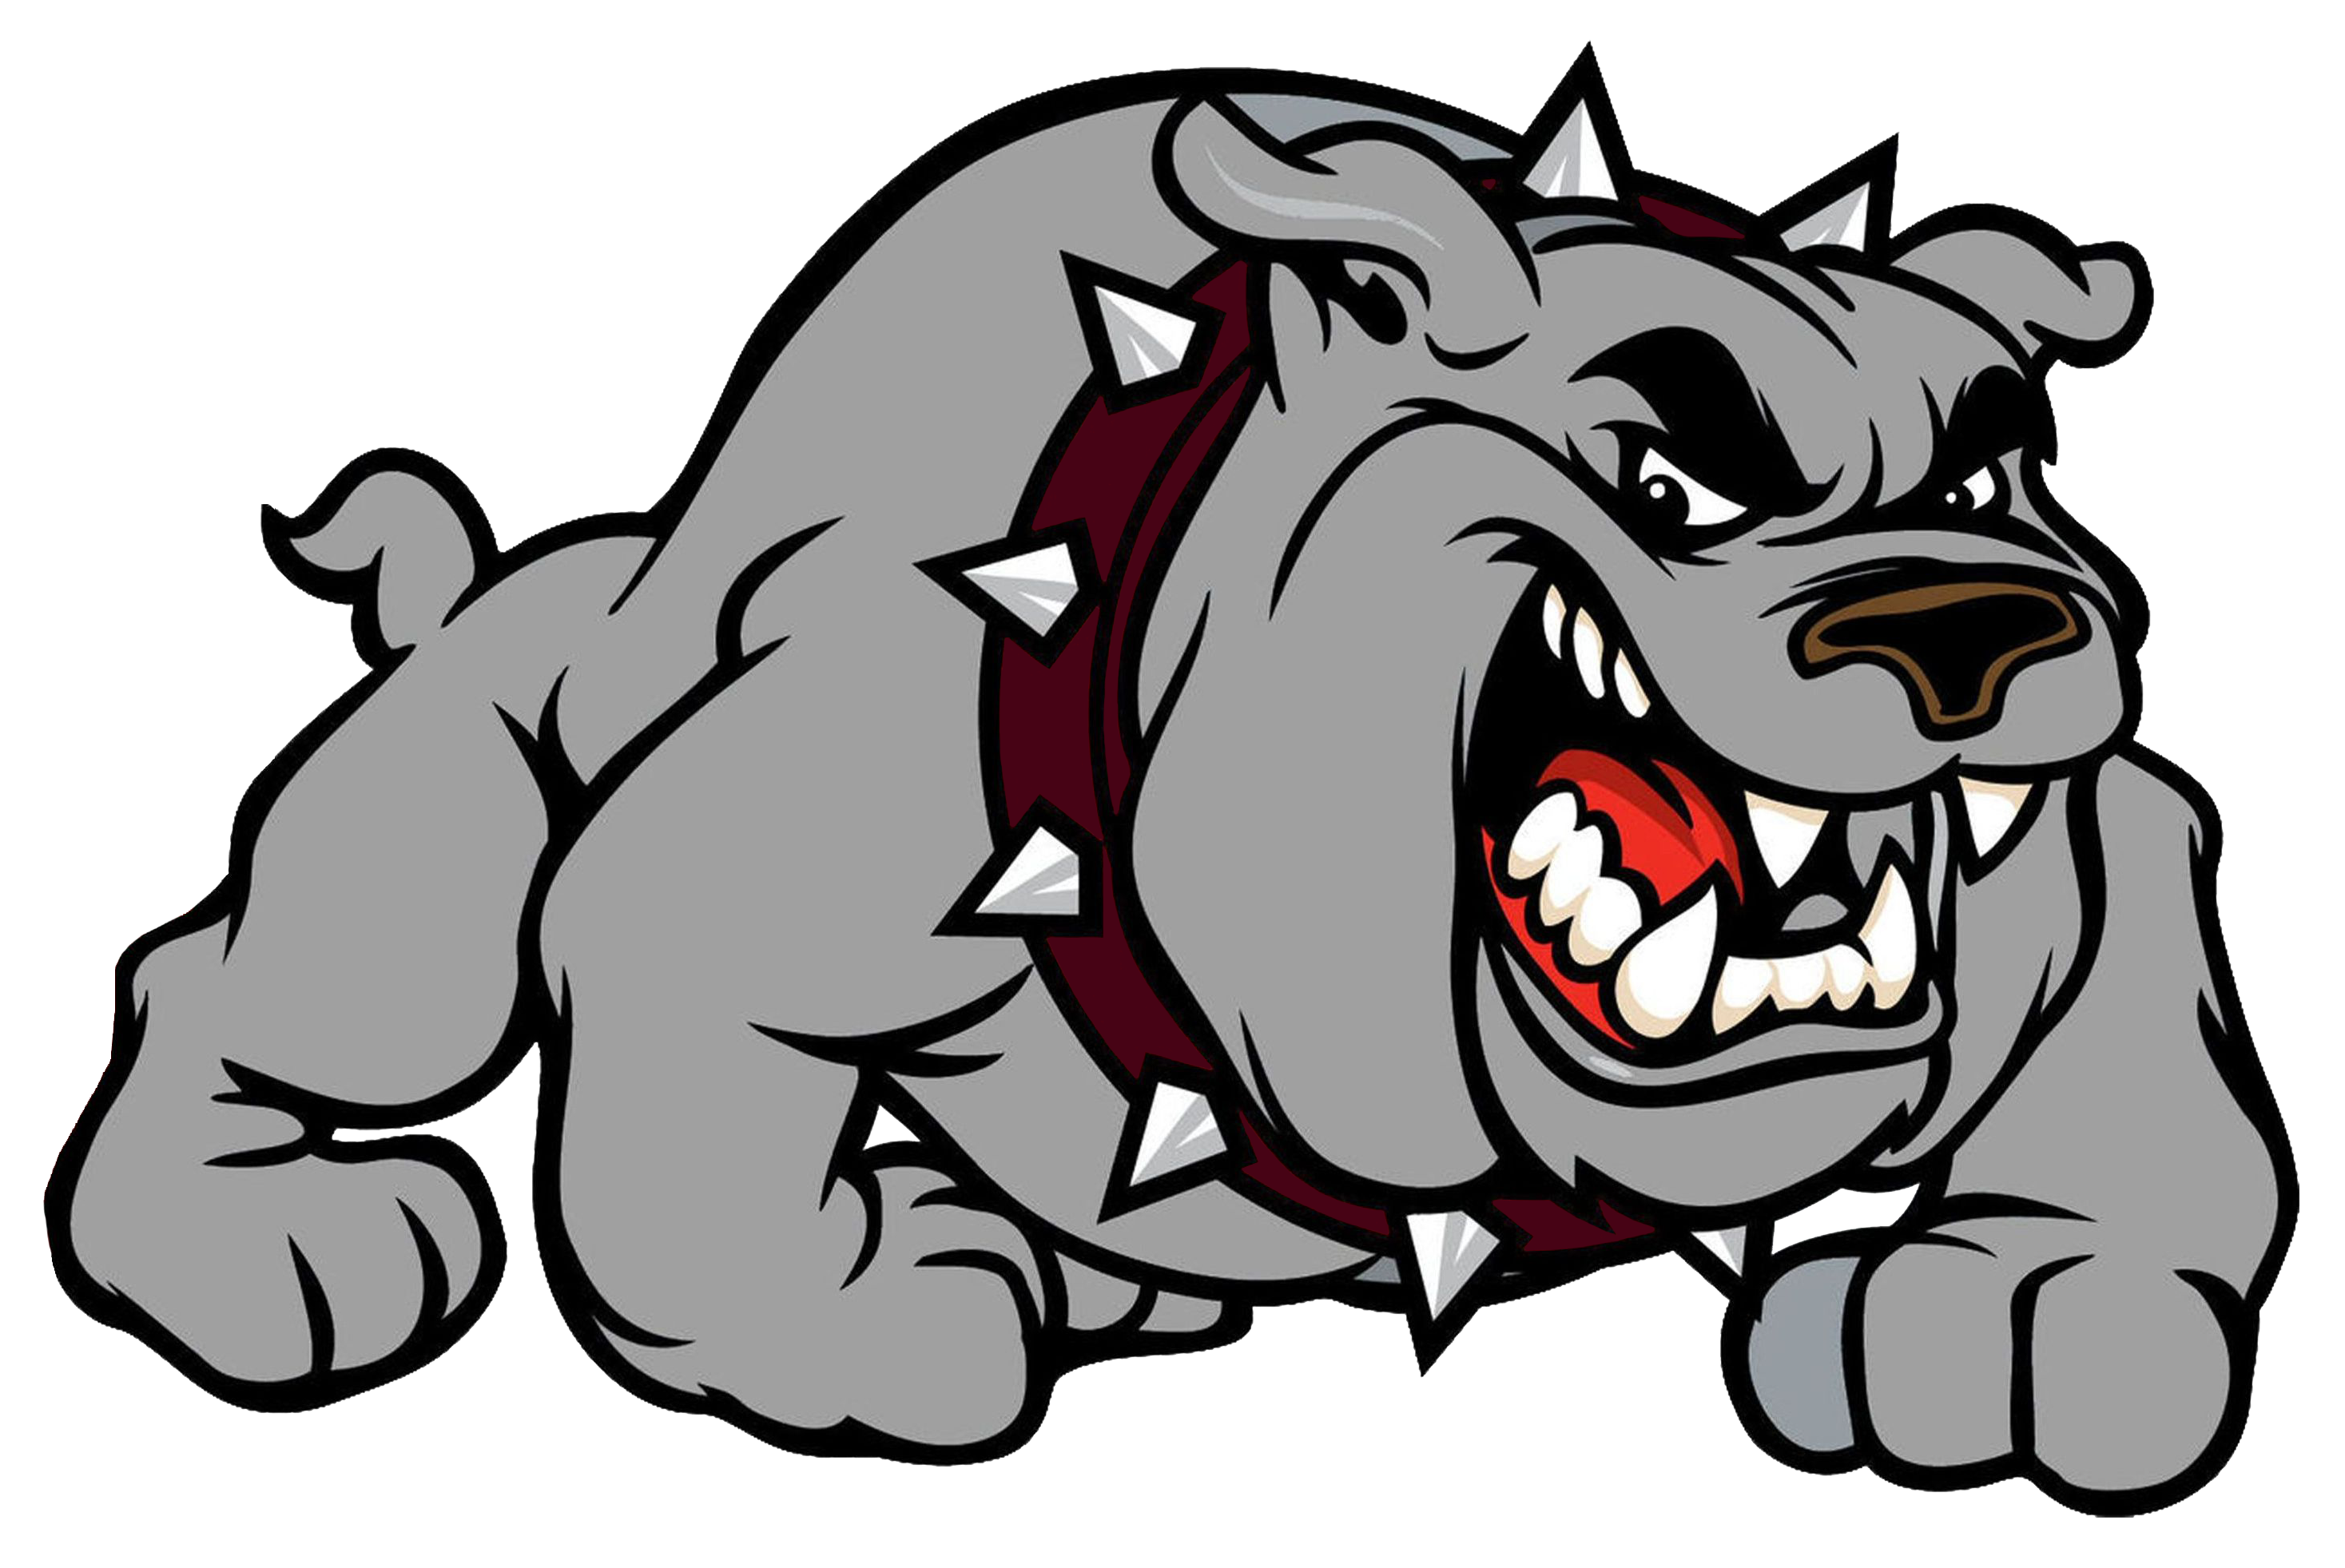 Bulldog basketball clipart svg royalty free download Heights - Team Home Heights Bulldogs Sports svg royalty free download